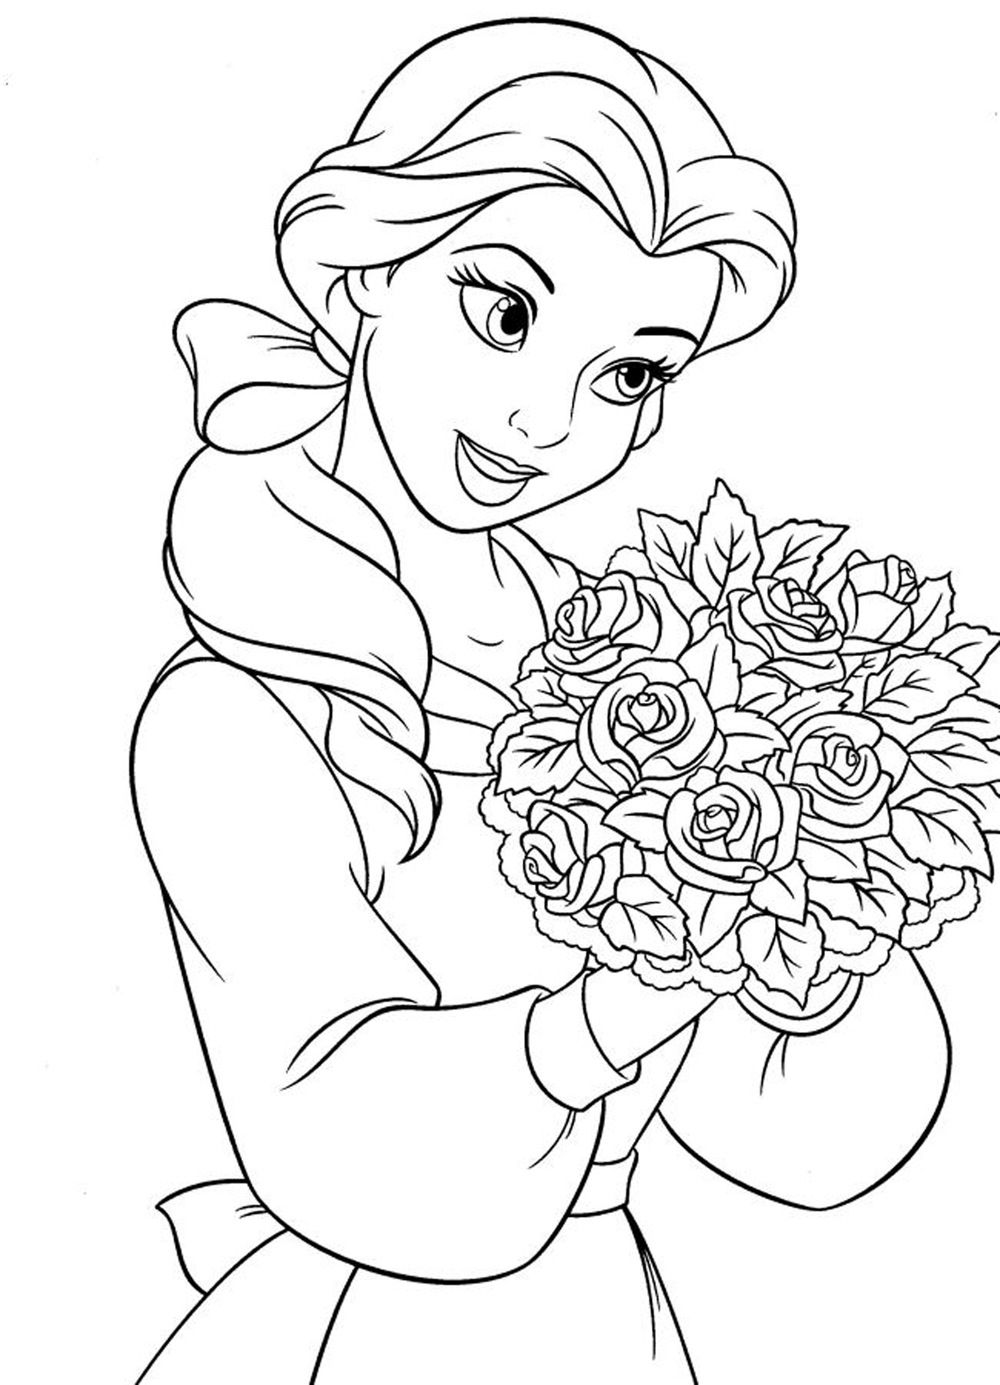 prncess coloring pages - photo#47